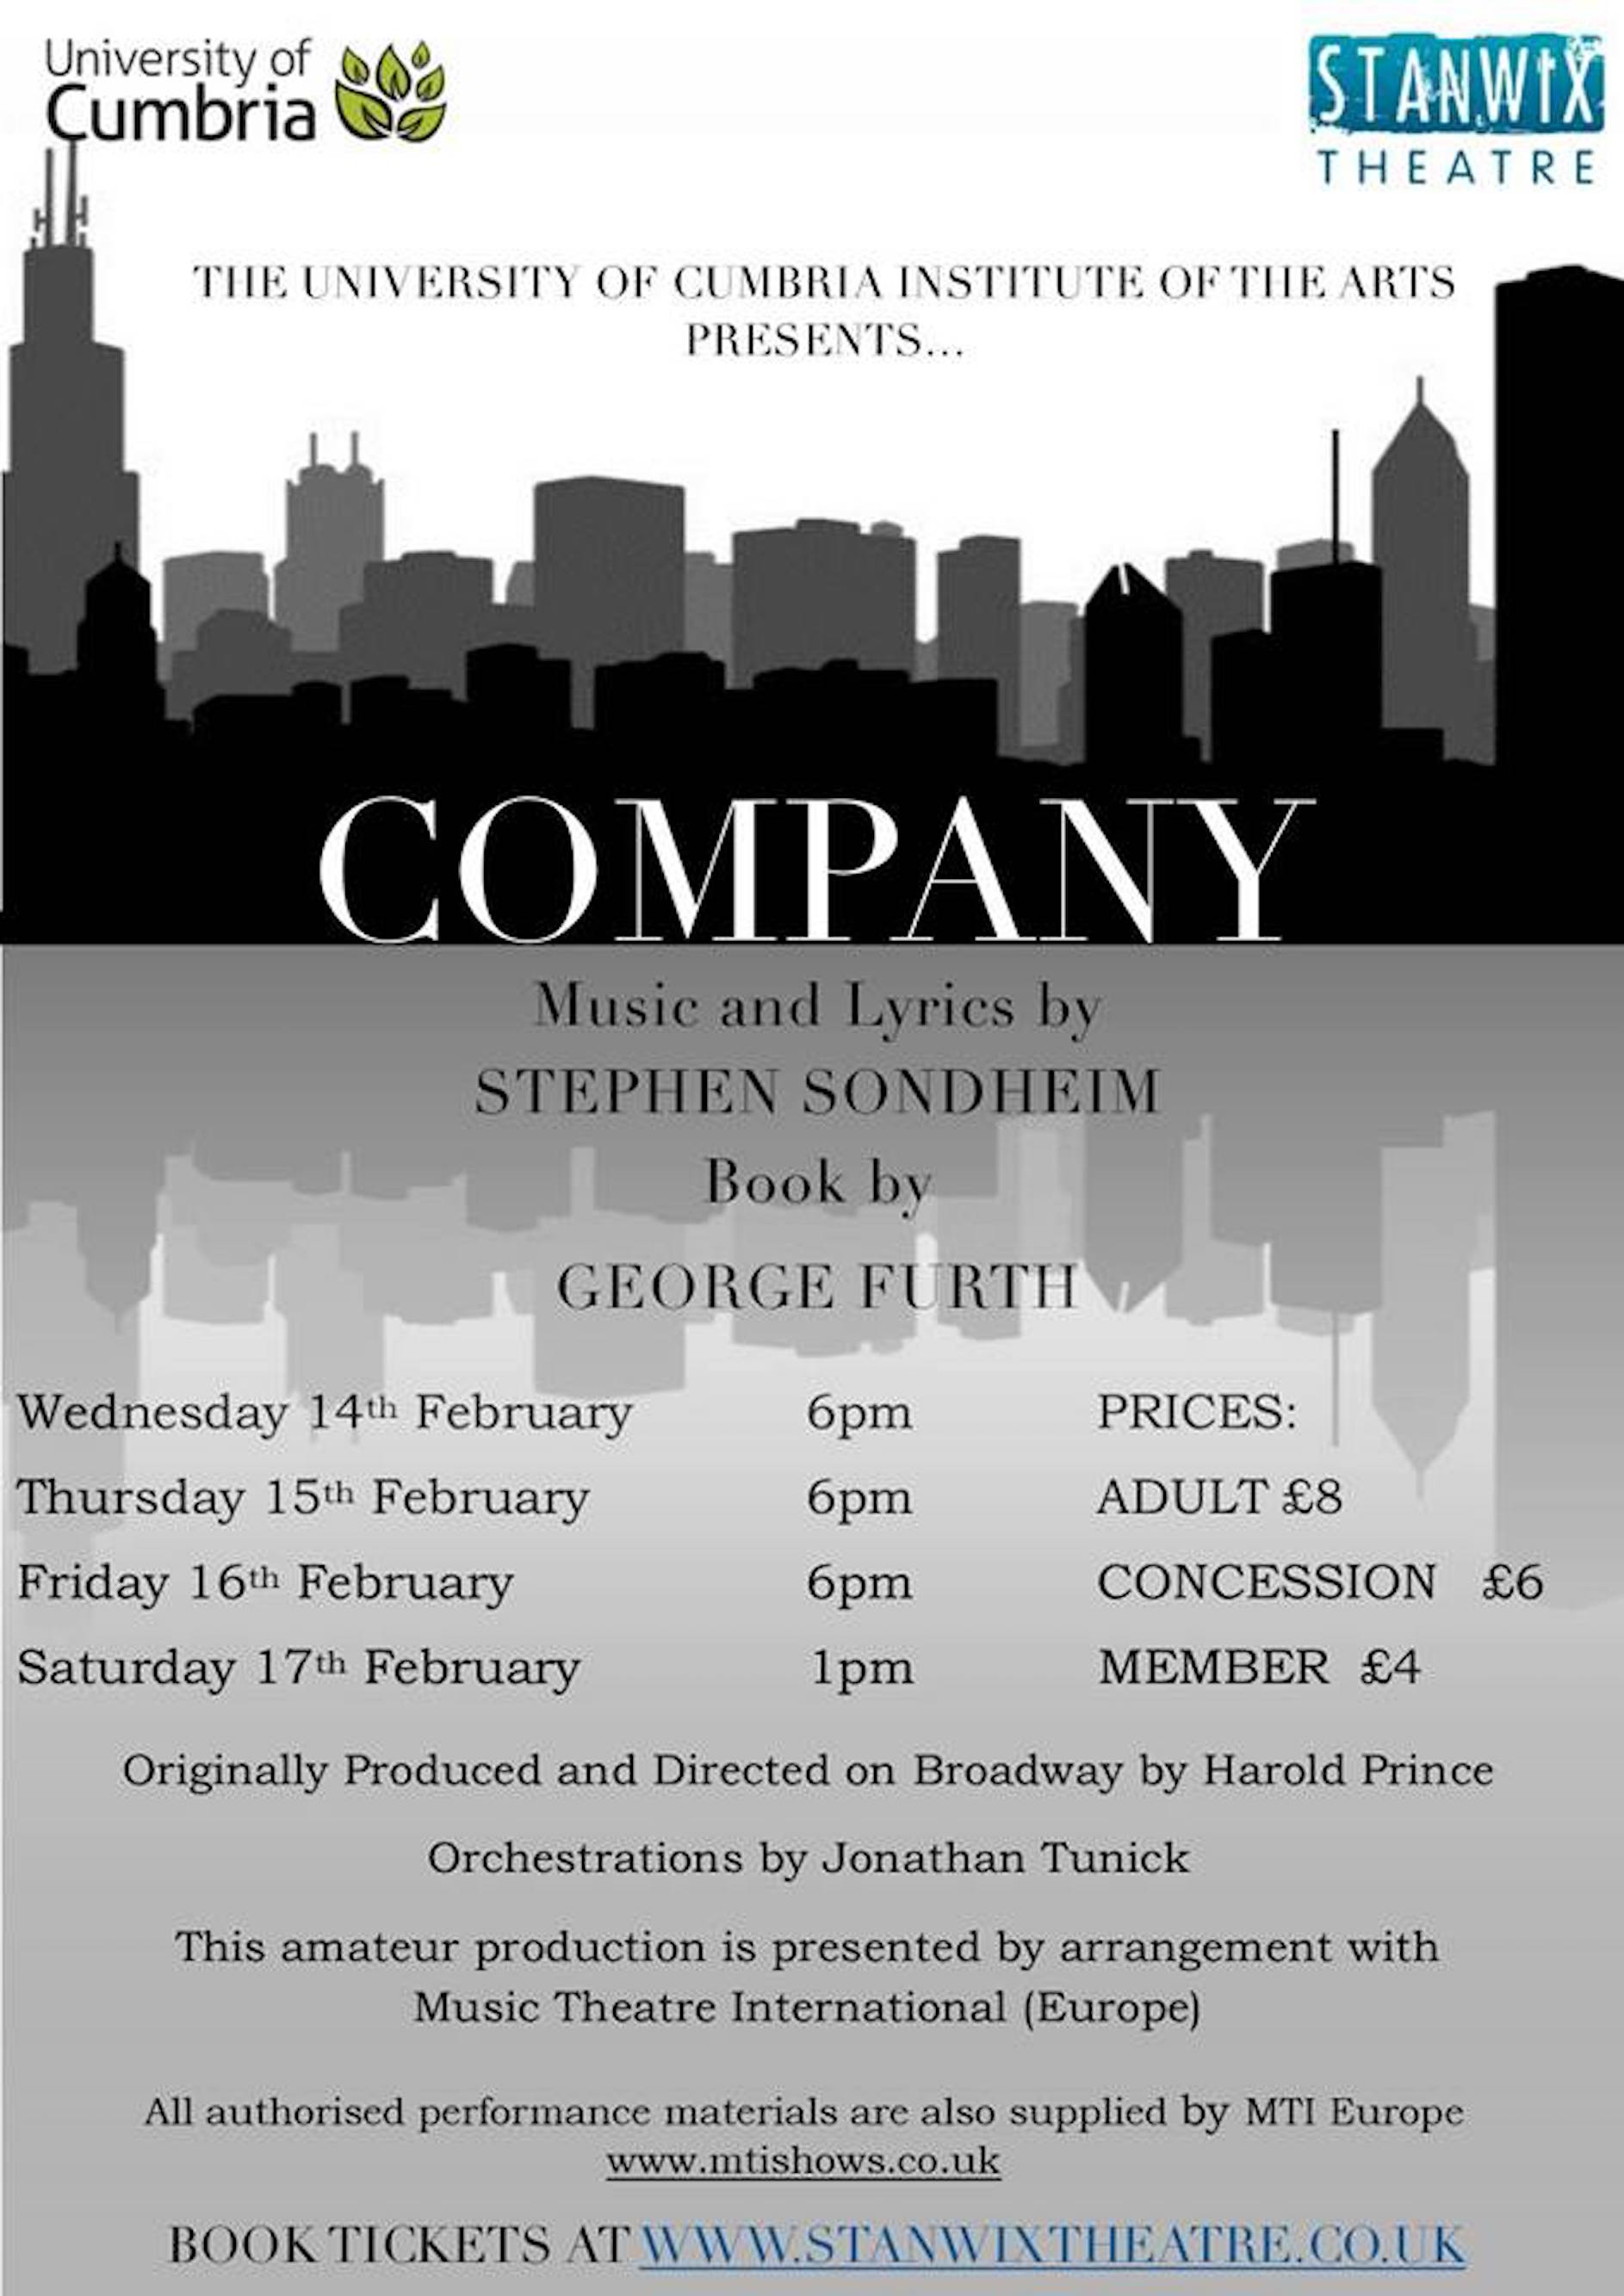 http://www.danceahead.co.uk/wp-content/uploads/2018/03/Company-Poster-1.jpg